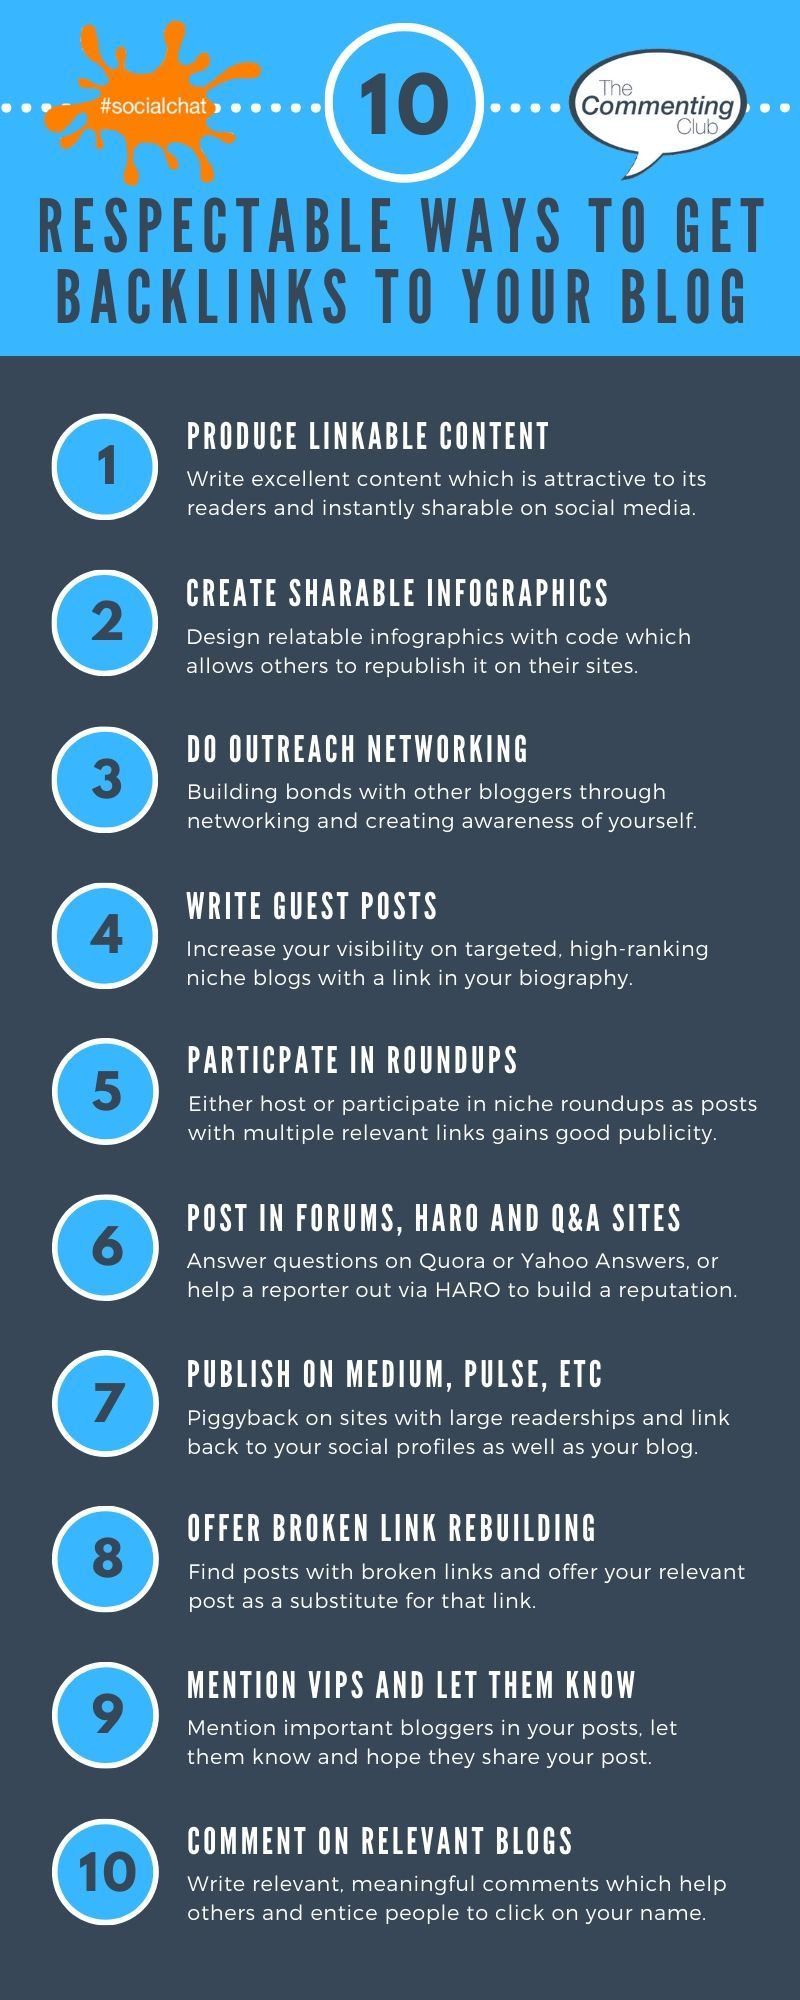 10 respectable ways for building links back to your blog